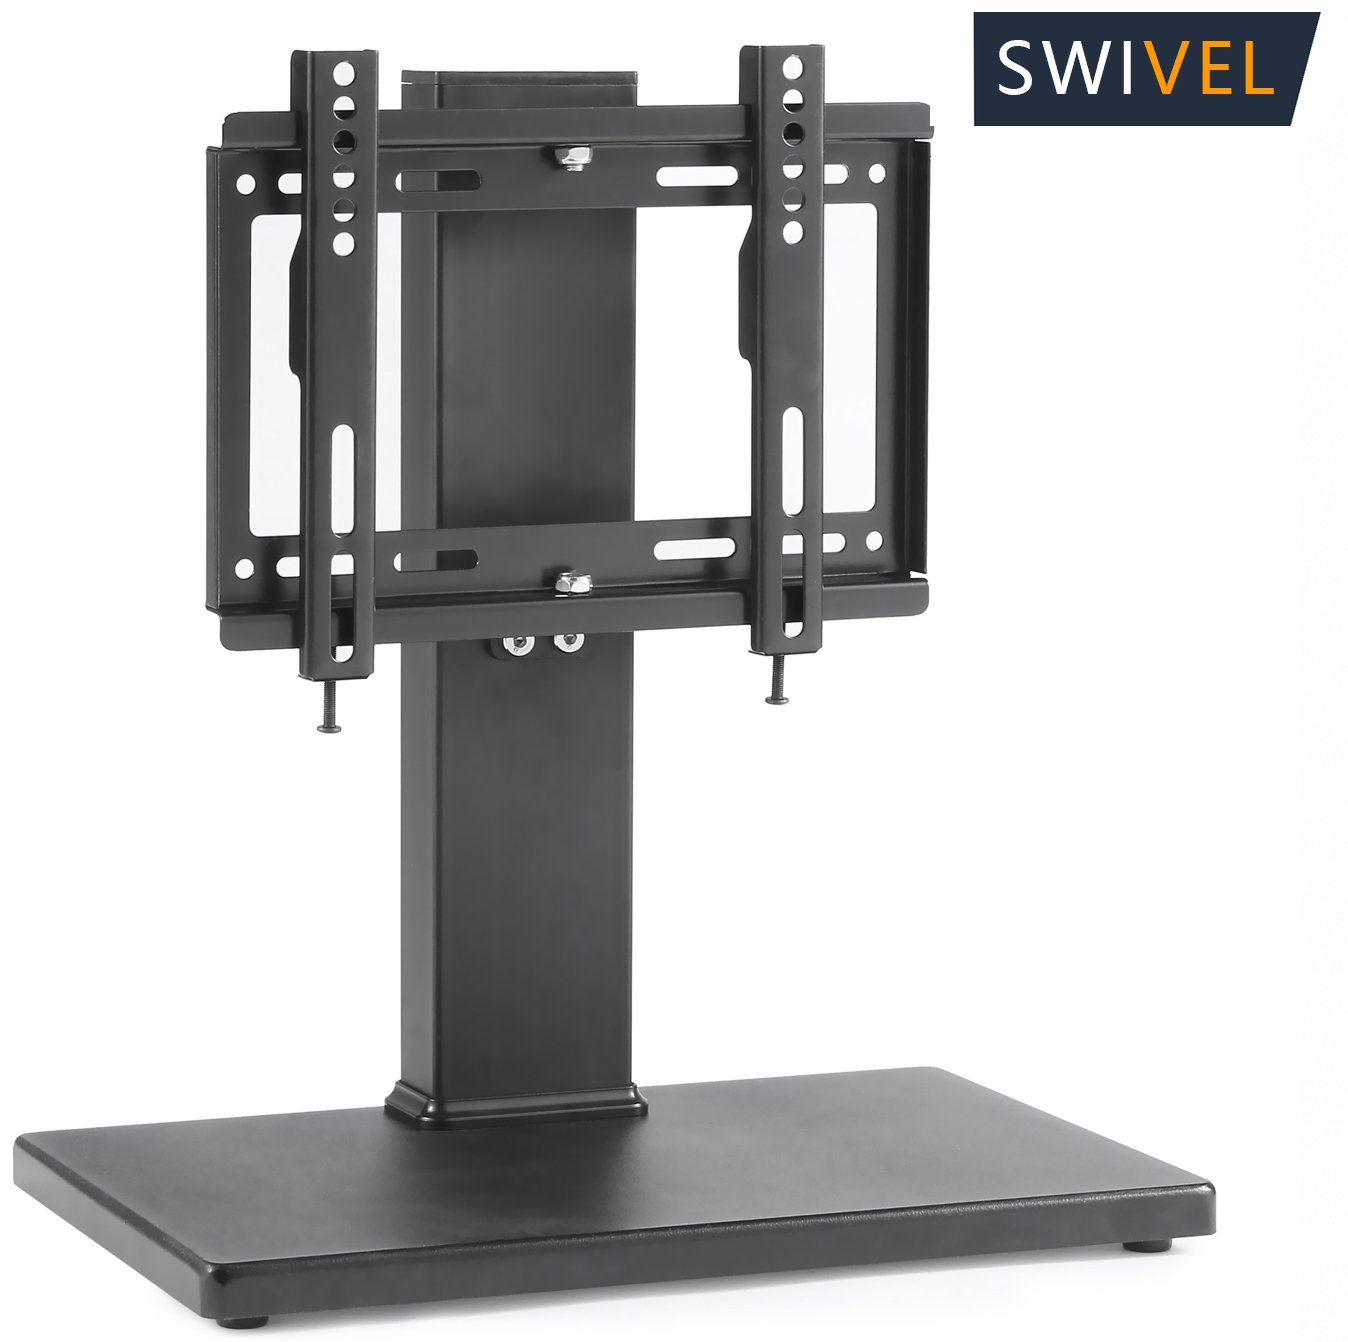 TAVR Universal Swivel Tabletop TV Stand with Mount for up to 32 inch LED,LCD and Plasma Flat Screen TVs with Height Adjustment Function,Wood Black UT1003